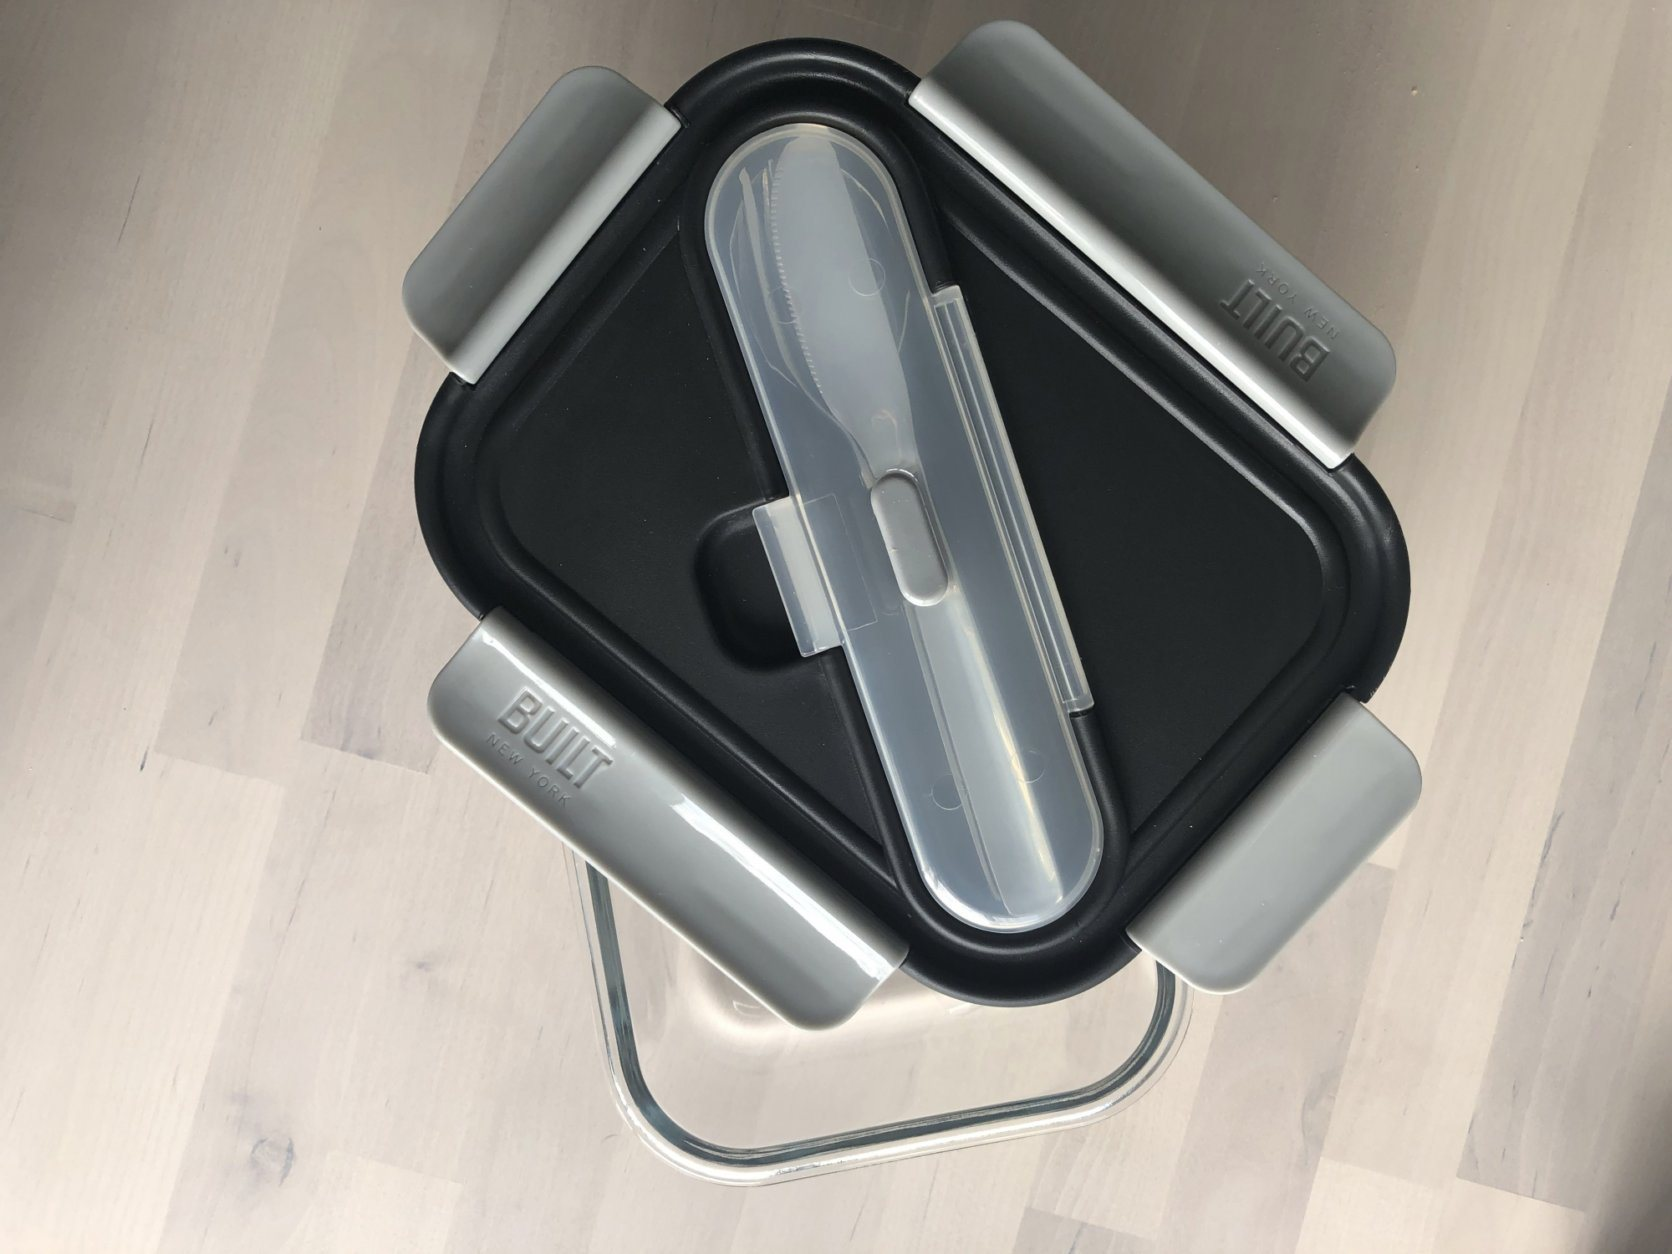 This 2019 photo taken in New York shows a glass lunch bento box with stainless steel utensils from Built. (Katie Workman via AP)